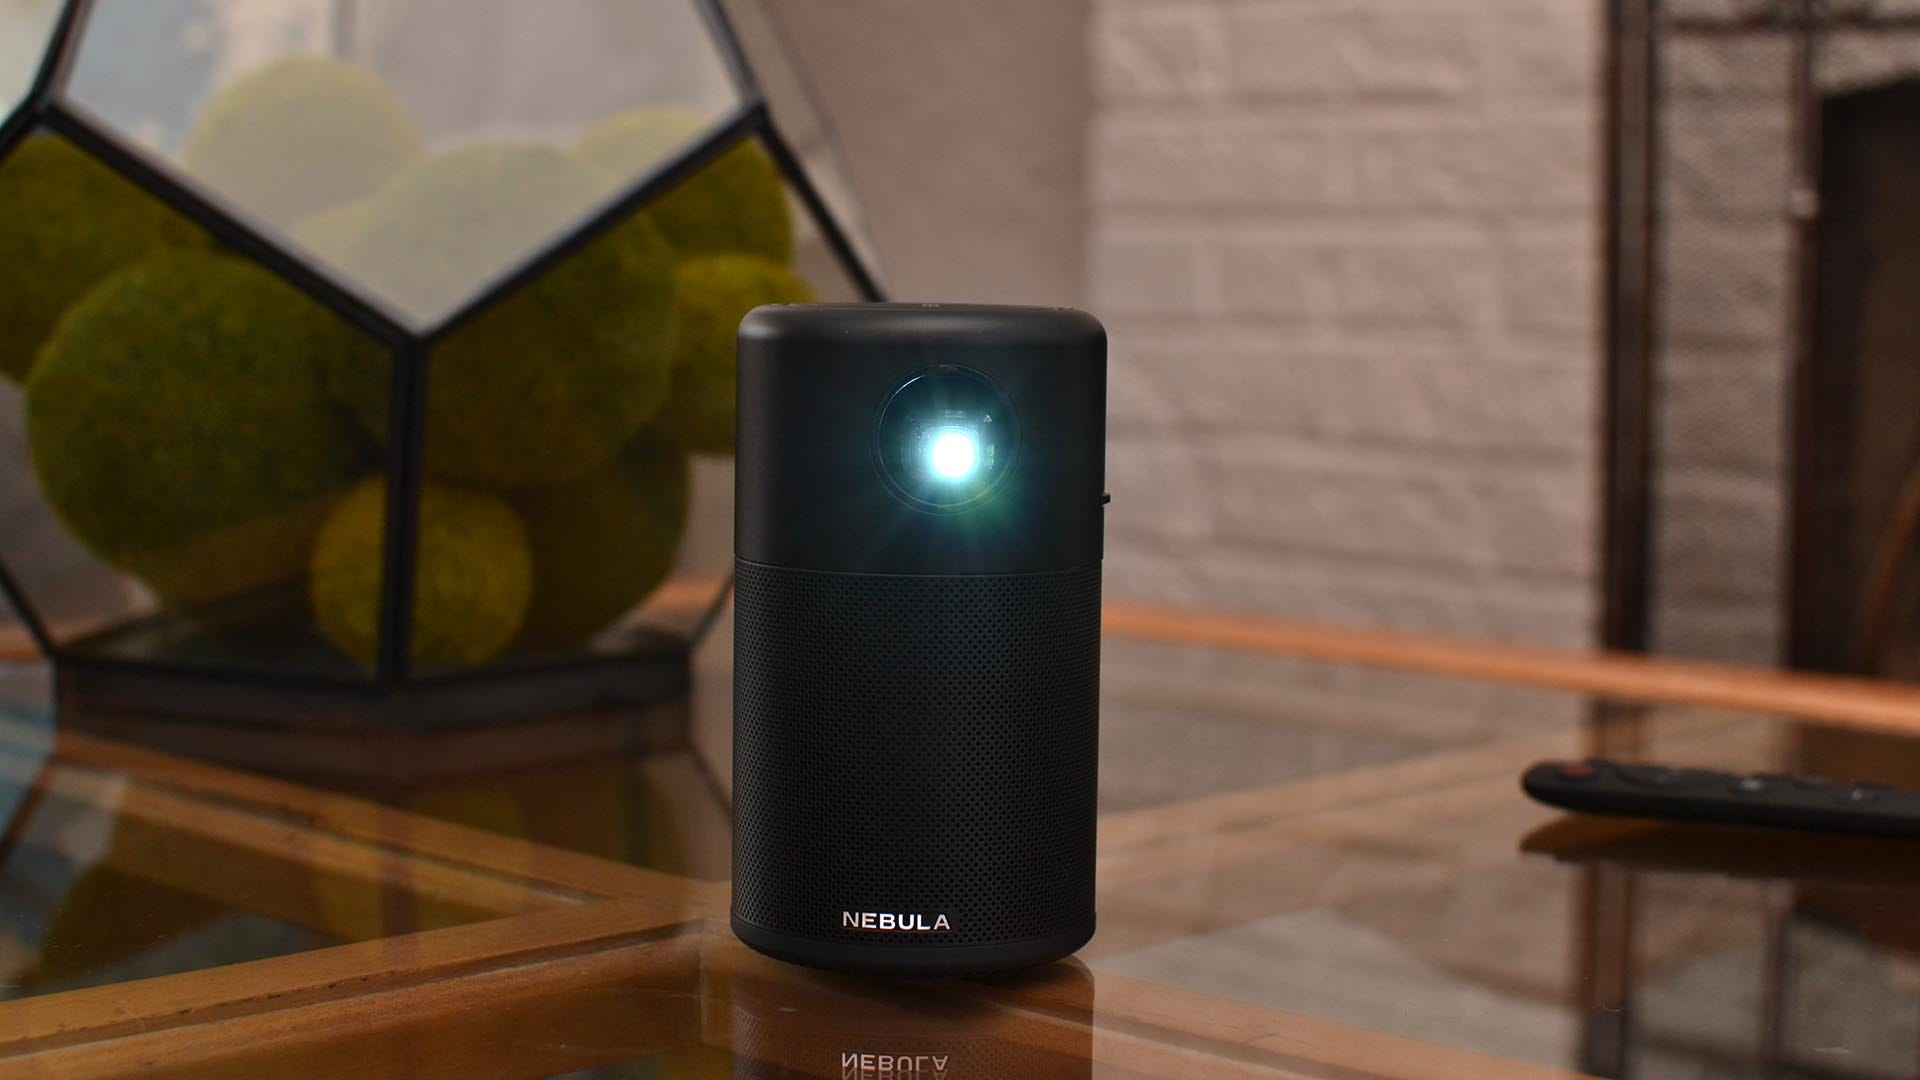 Nebula Capsule projector with the bulb on